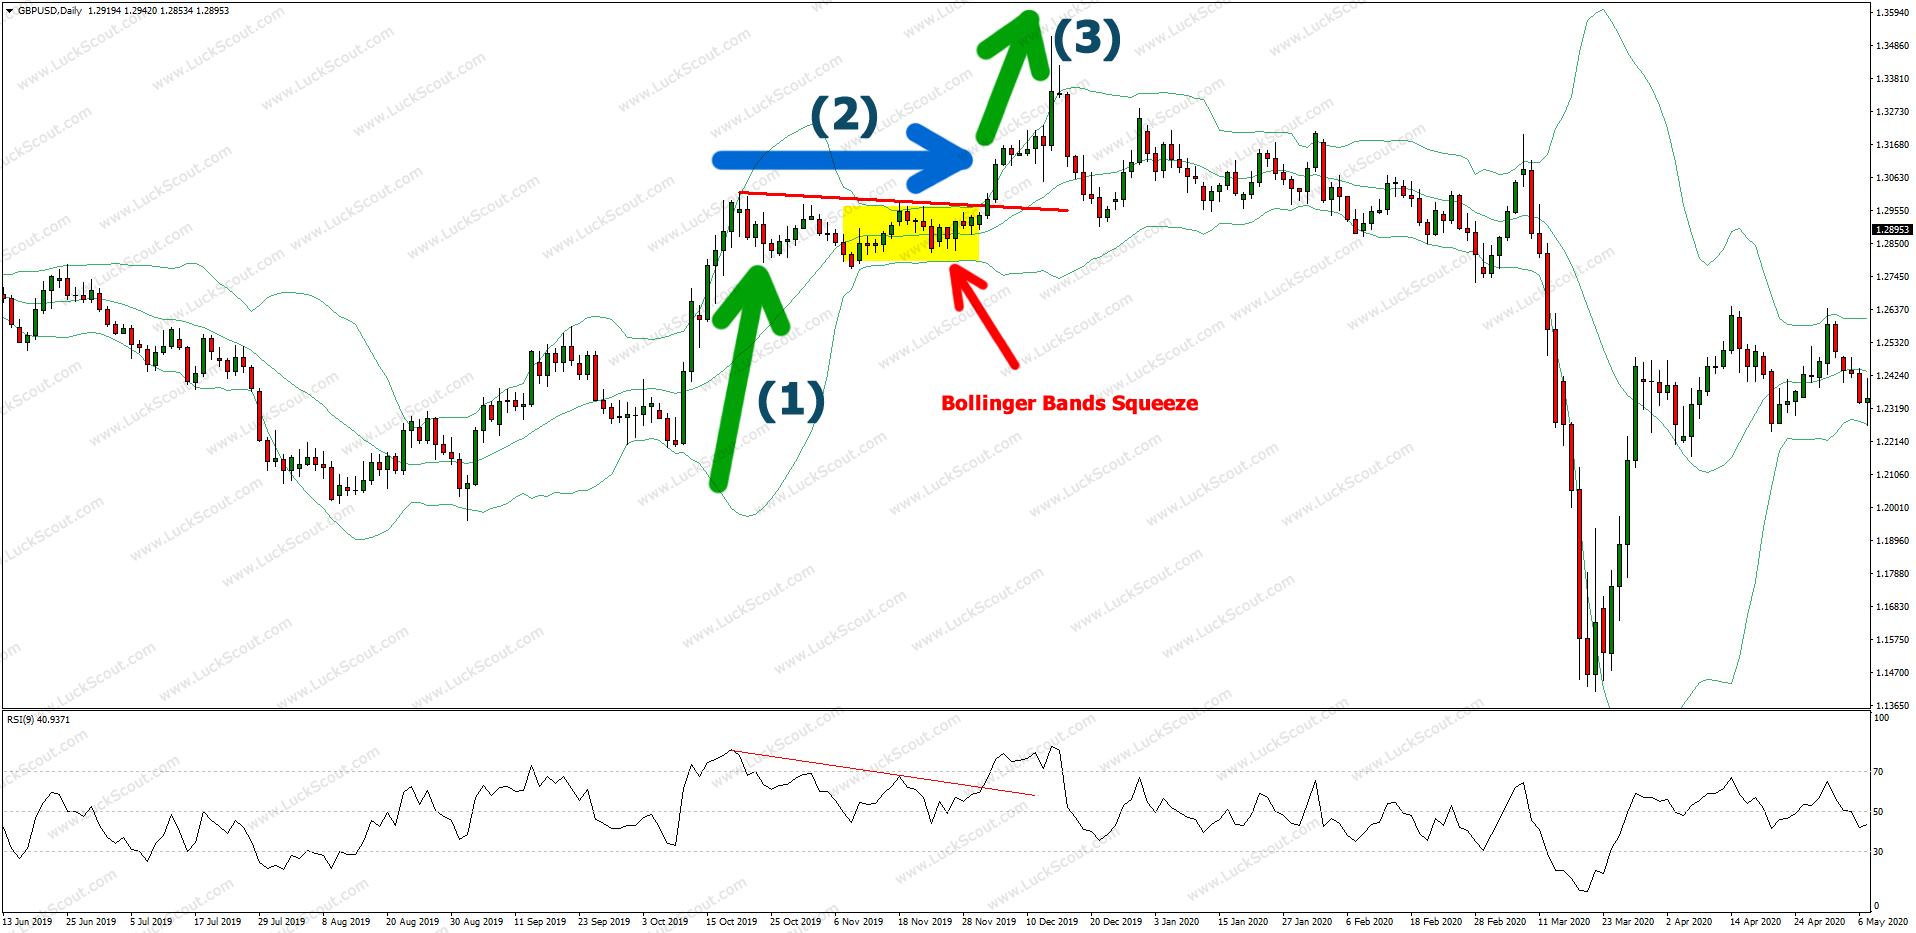 RSI 9 and Bollinger Bands Squeeze